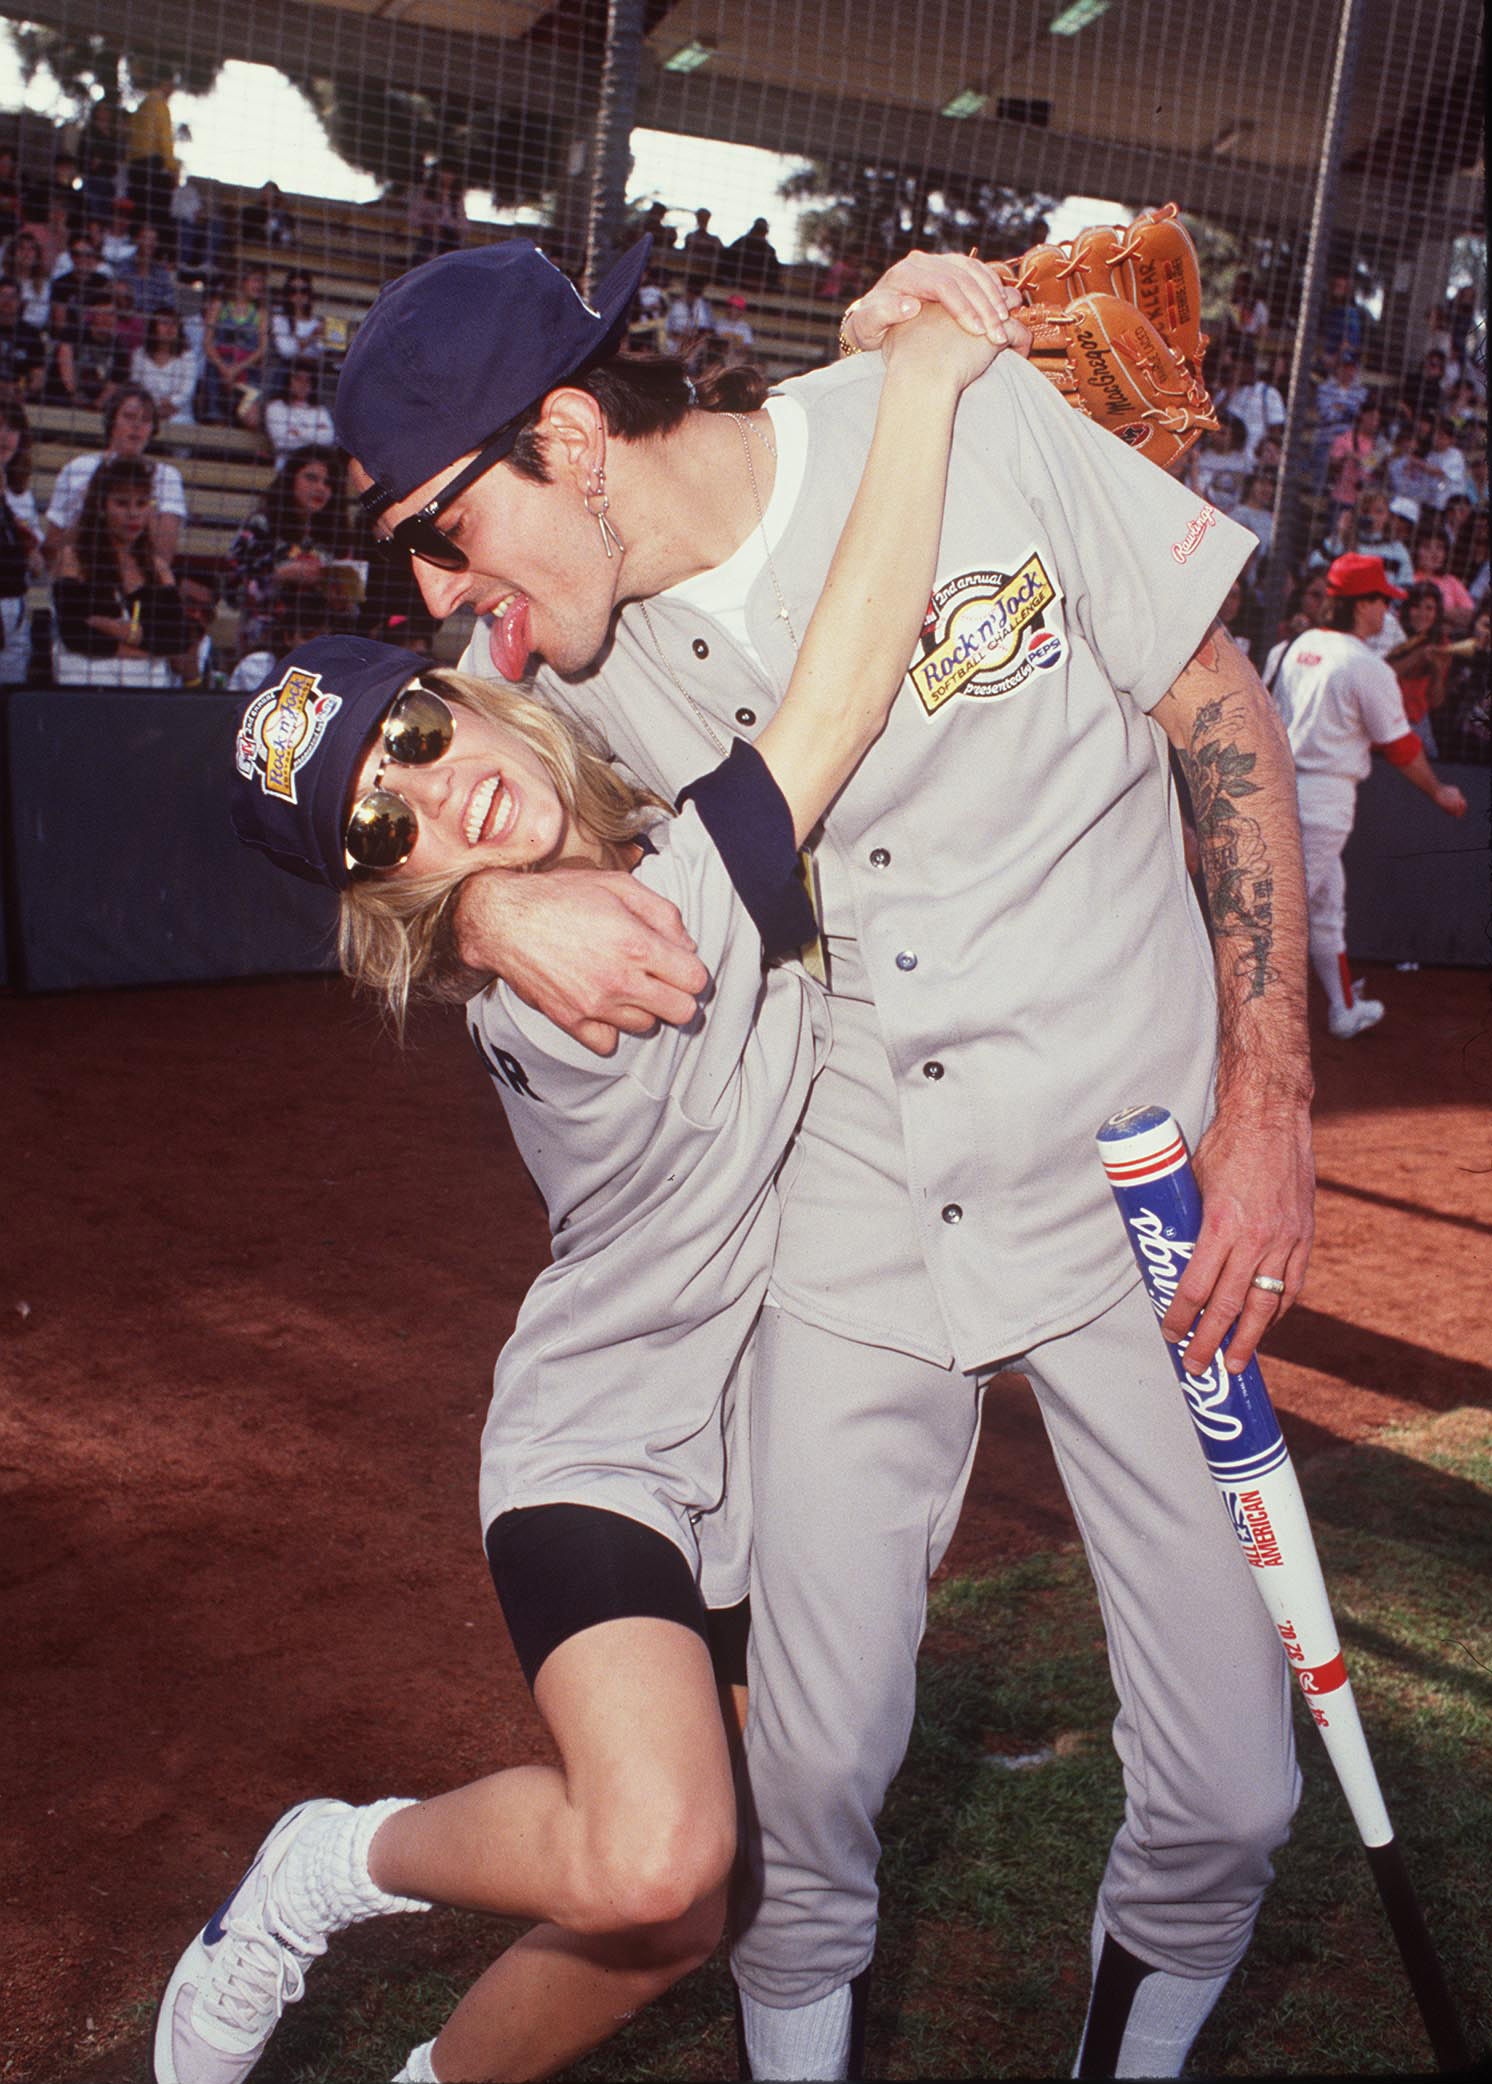 Tommy Lee & Heather Locklear at the USC Baseball Field in Los Angeles, California (Source: Steve Granitz/WireImage)